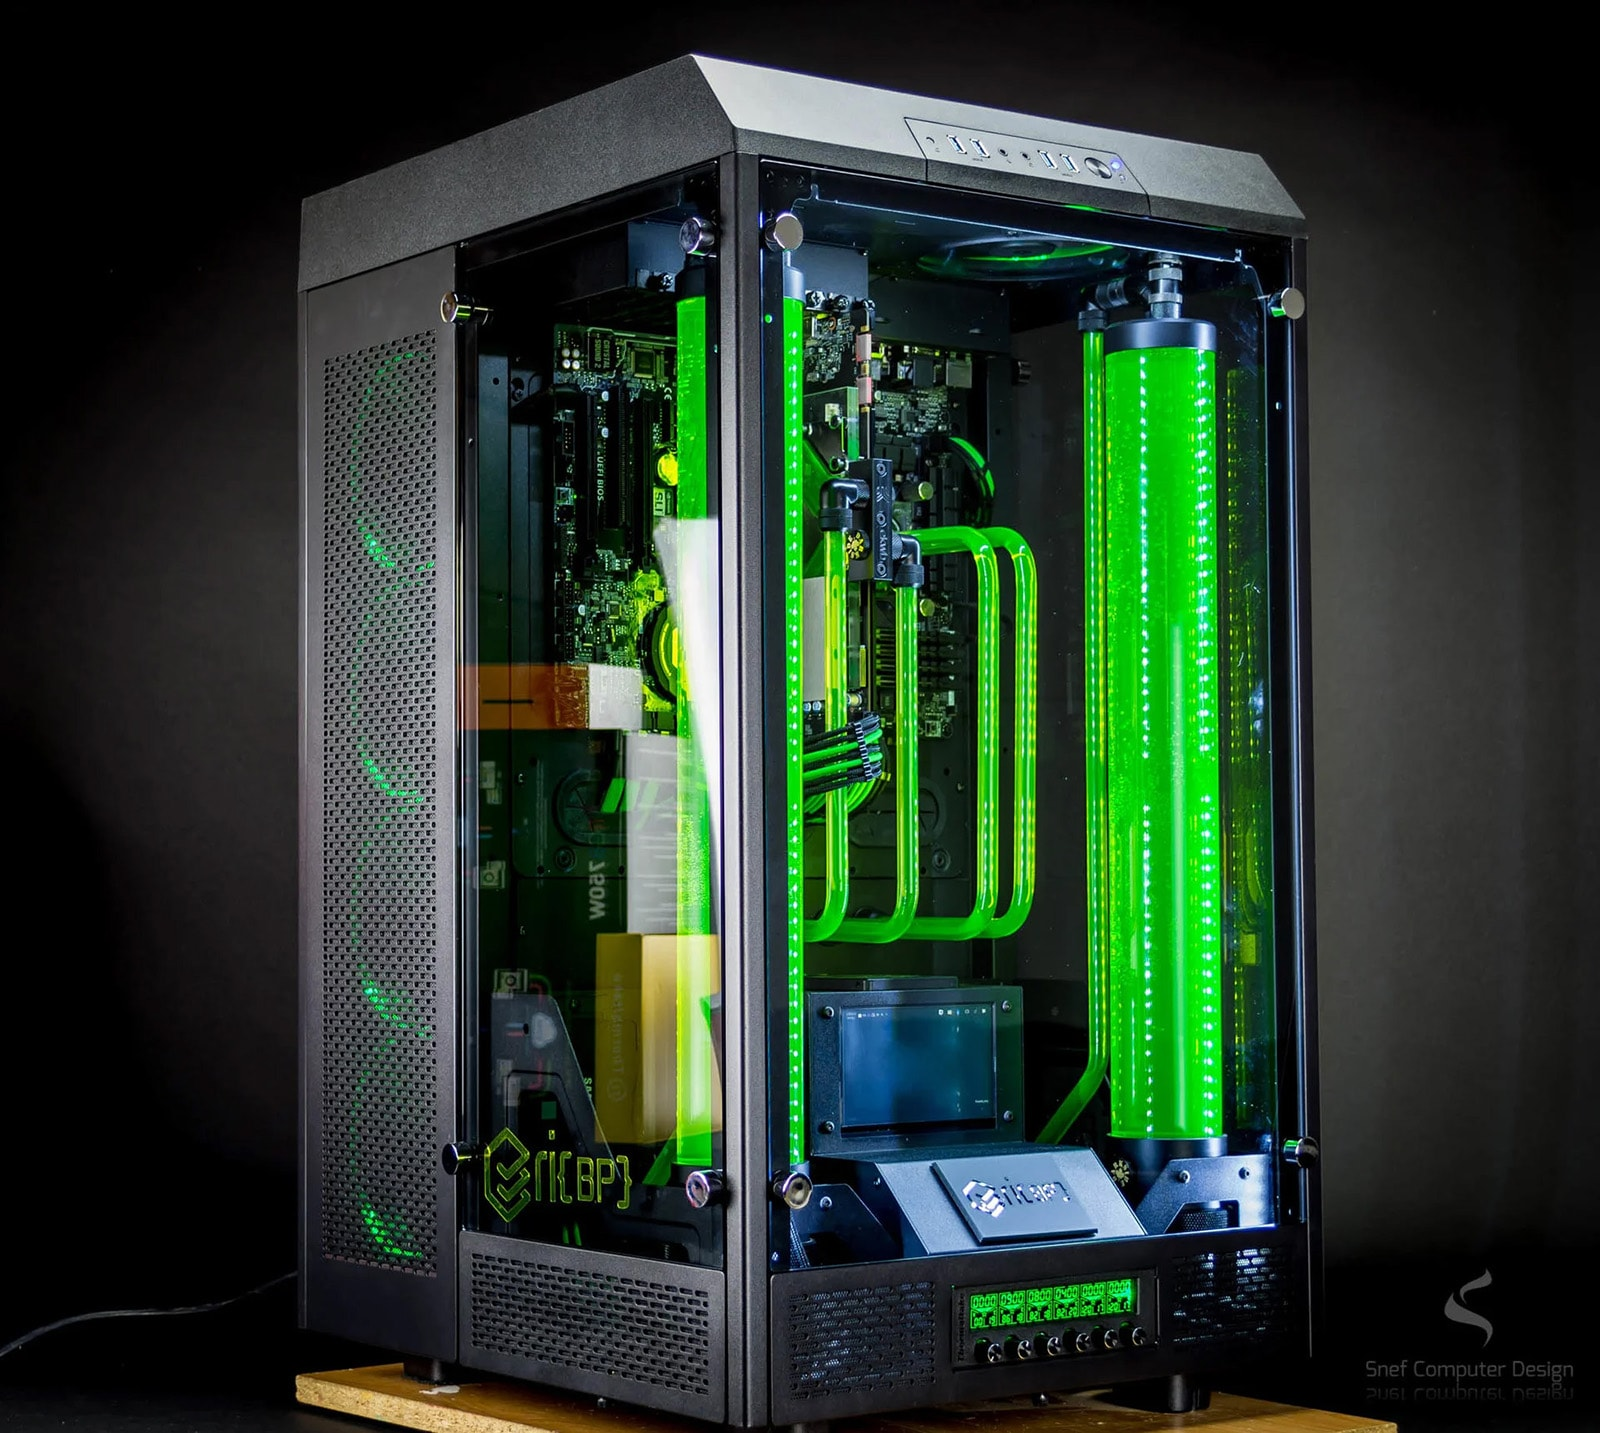 The Thermaltake Tower 900 pc case